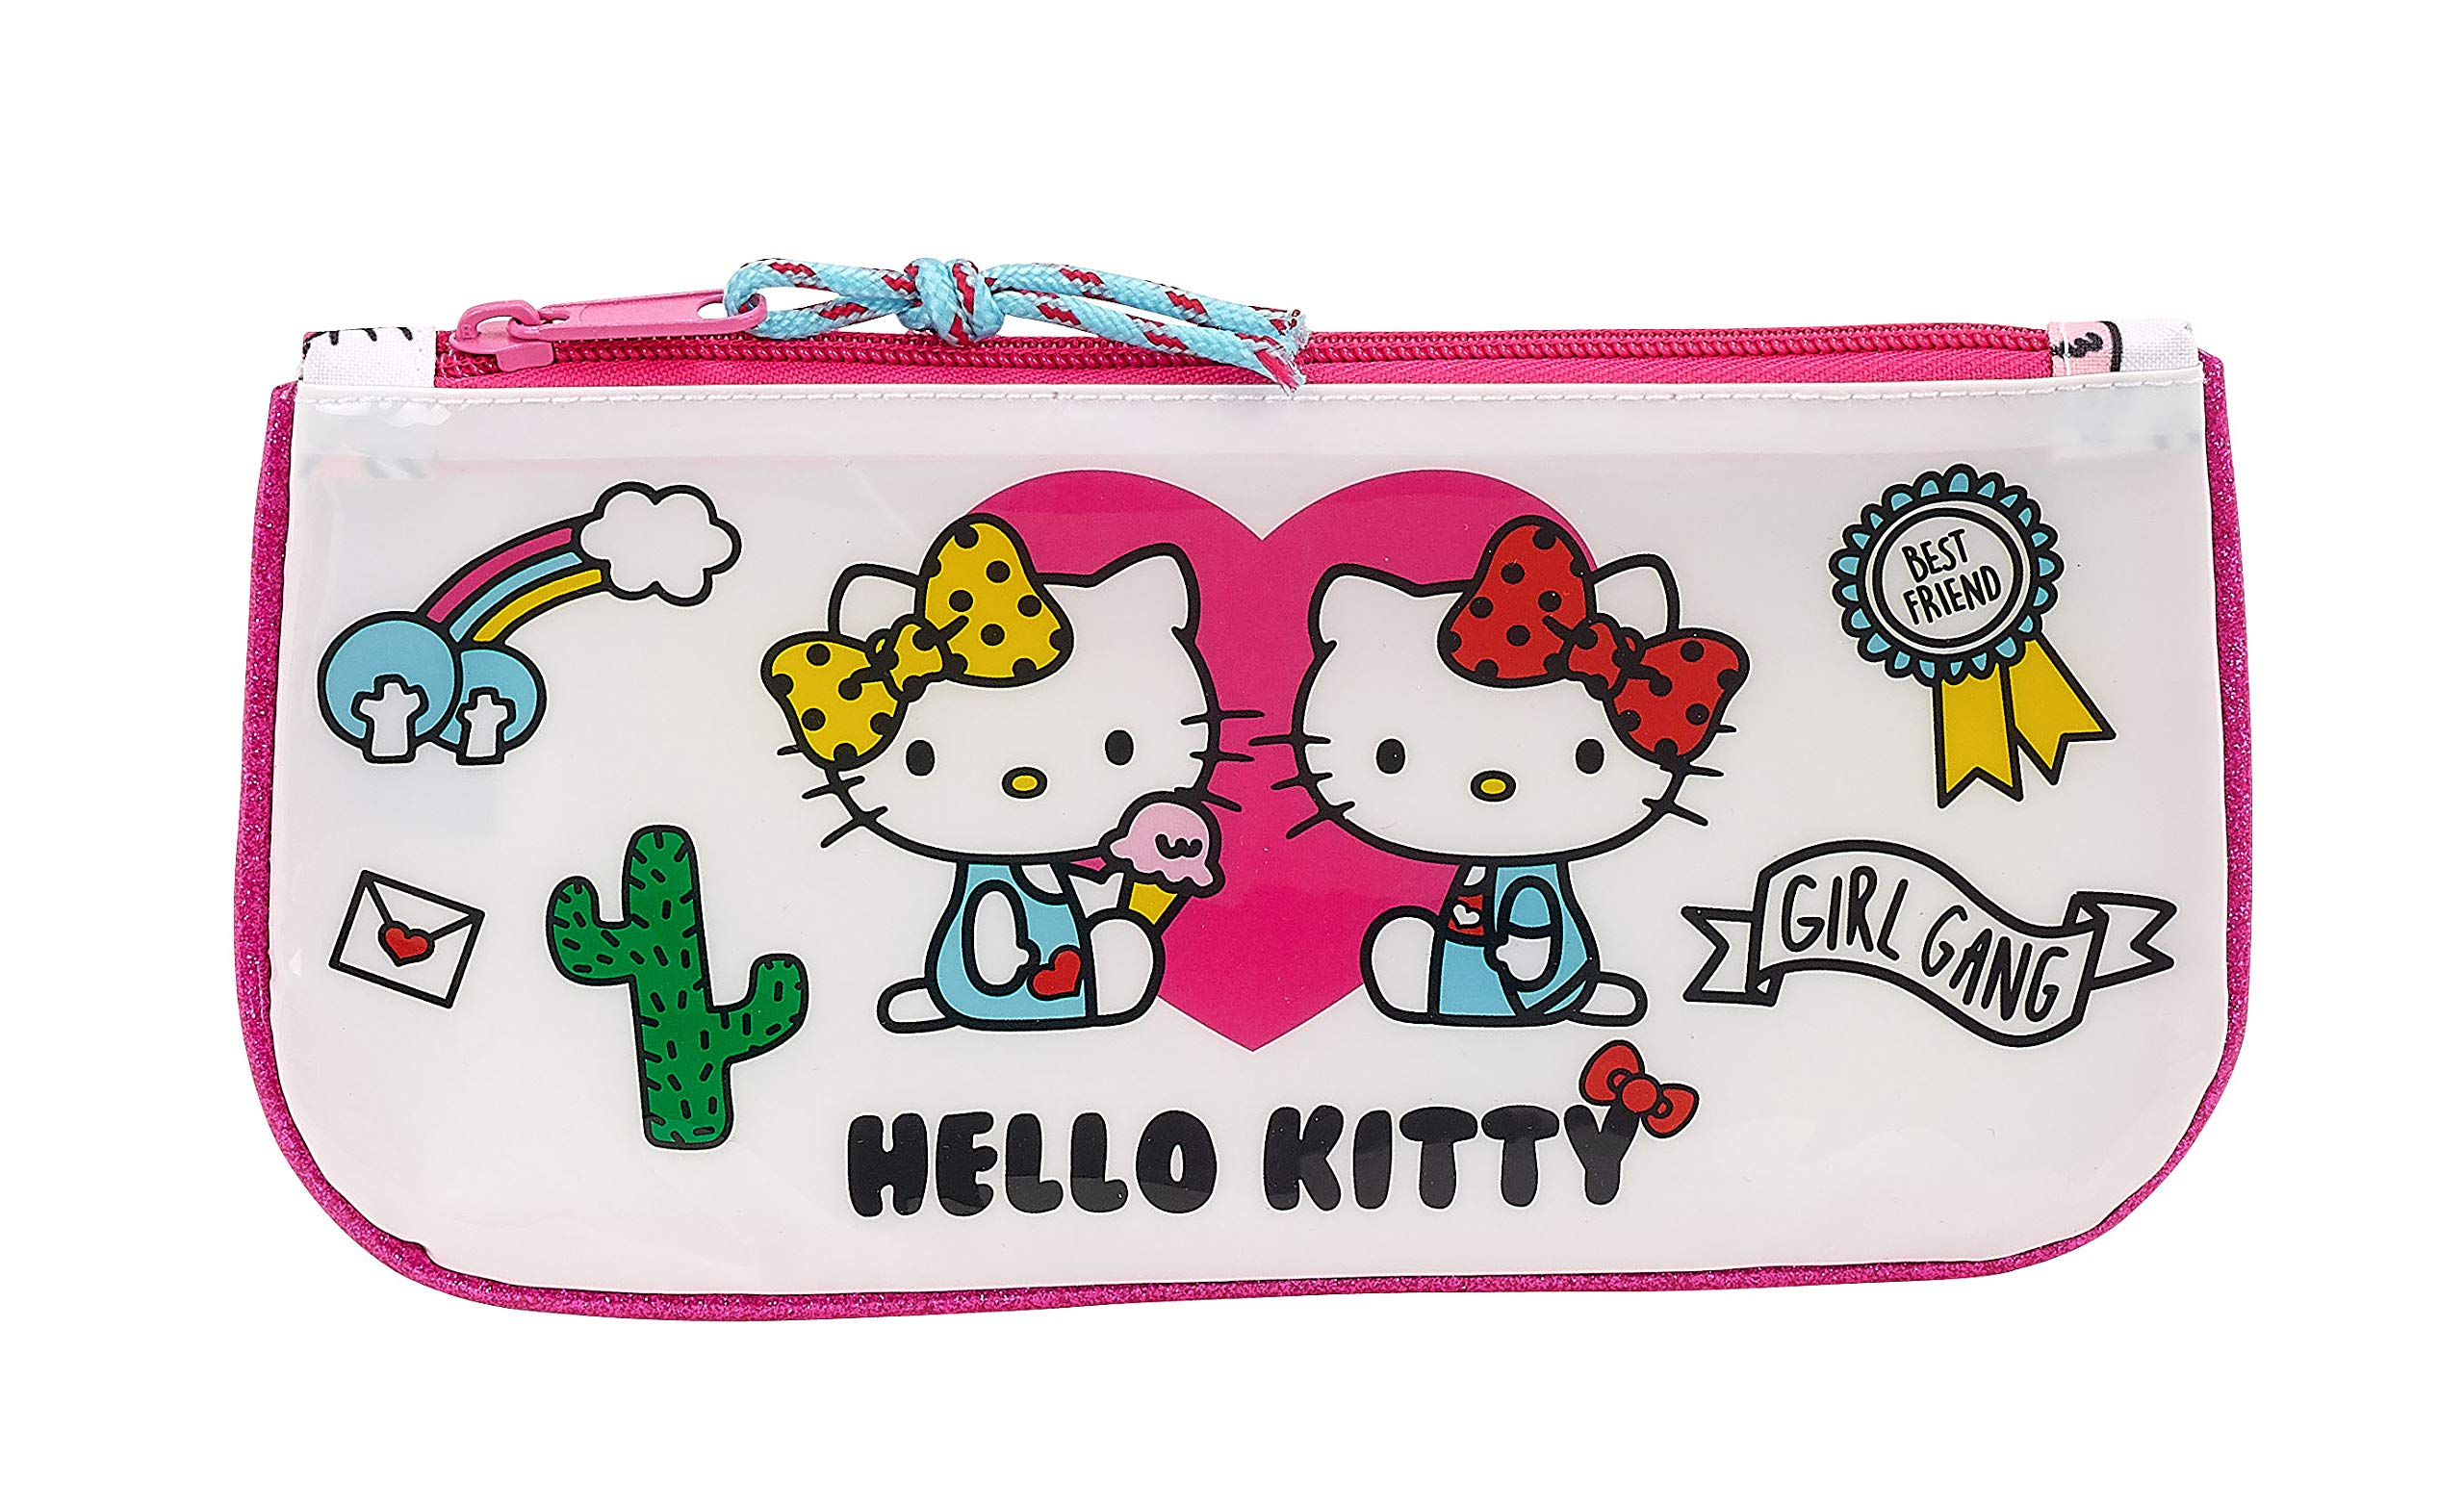 Hello Kitty 811816028 2018 Estuches, 23 cm, Rosa